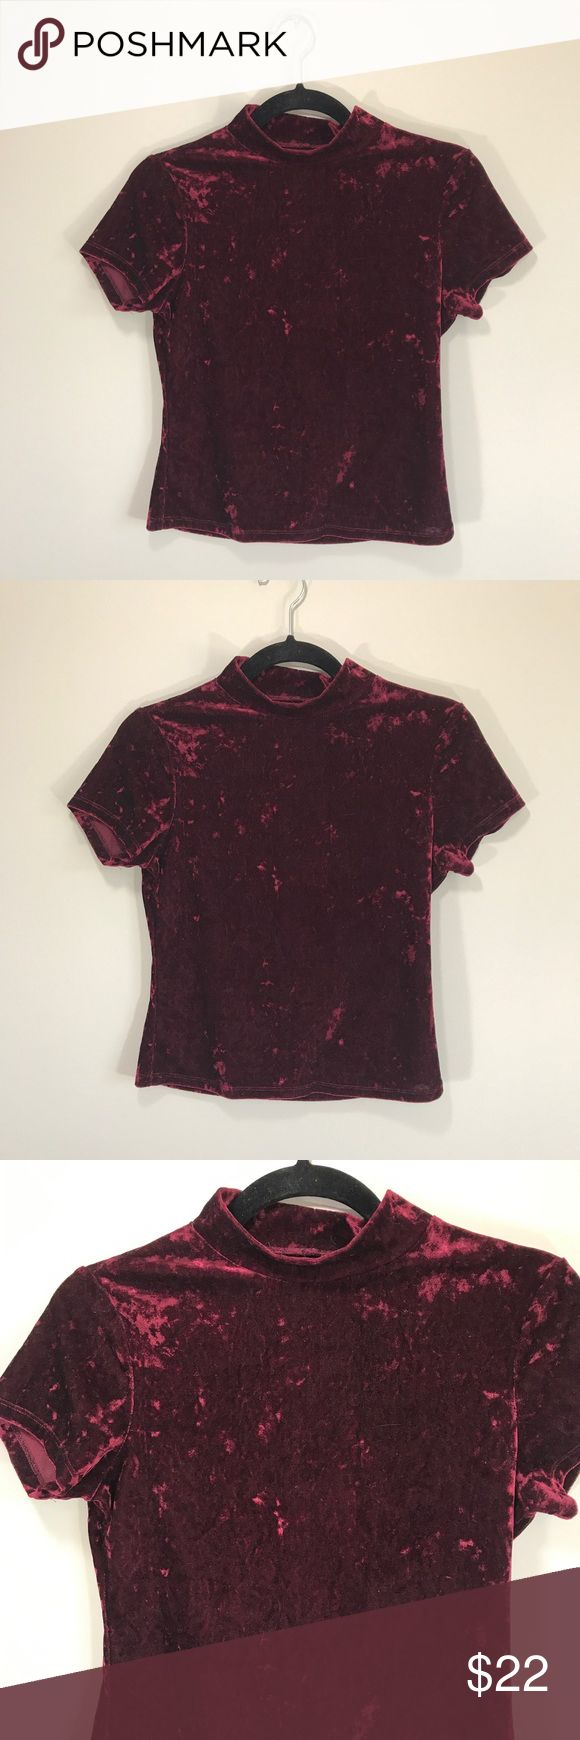 """Vintage 90s Burgundy Crushed Velvet Mock Neck Top In excellent vintage condition. Super soft outer velvet shell. High neck. Short sleeve. Stretchy! No Tags or size tags. Approximately size small. Please refer to measurements to ensure a proper fit! Pit to pit: 16"""" Length: 20"""" Tops Blouses"""